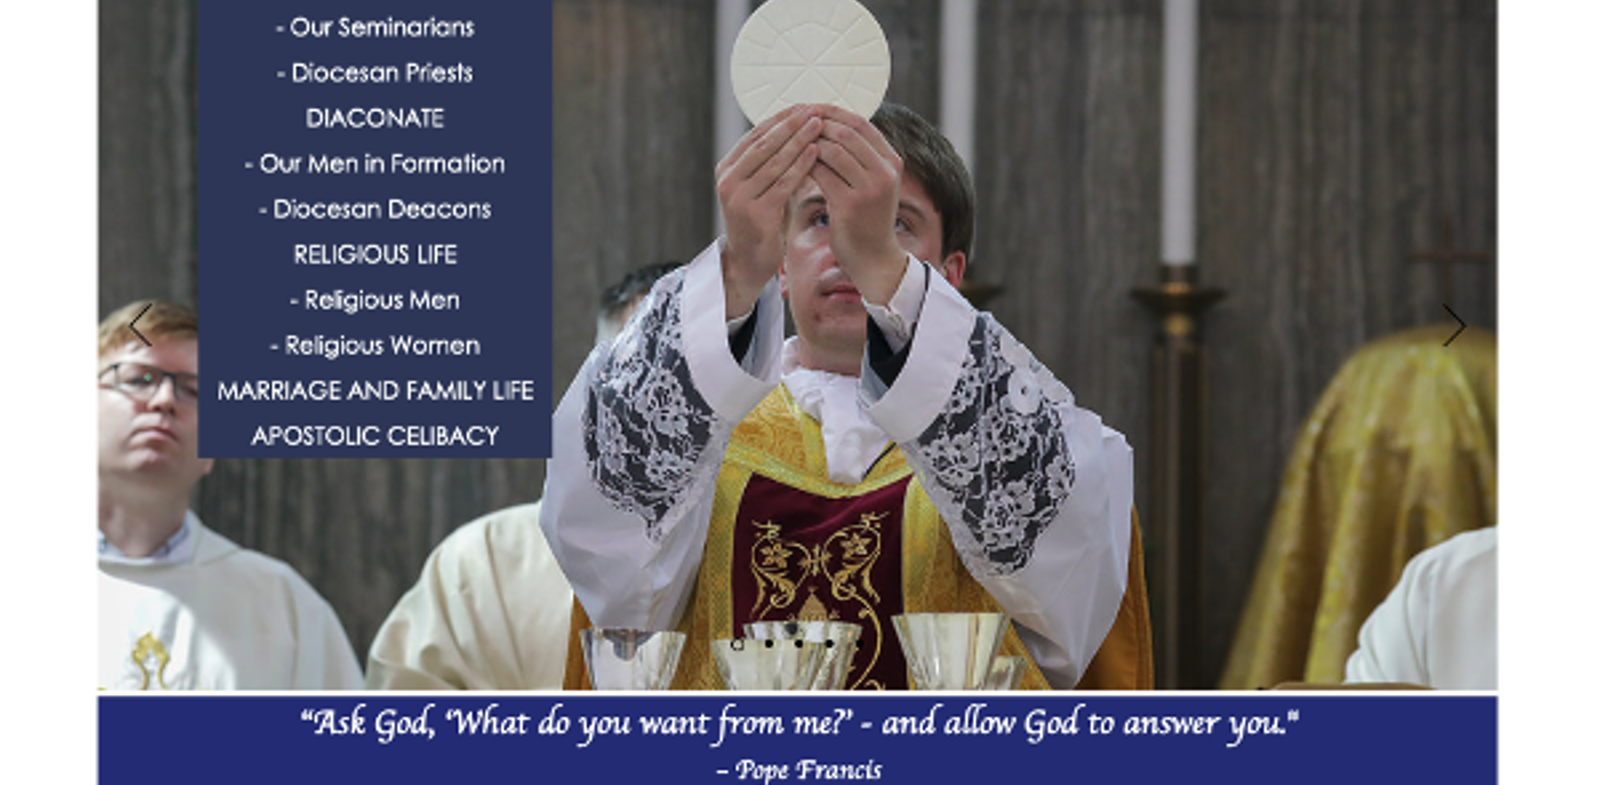 New website to help God's call be heard across the Archdiocese of Birmingham